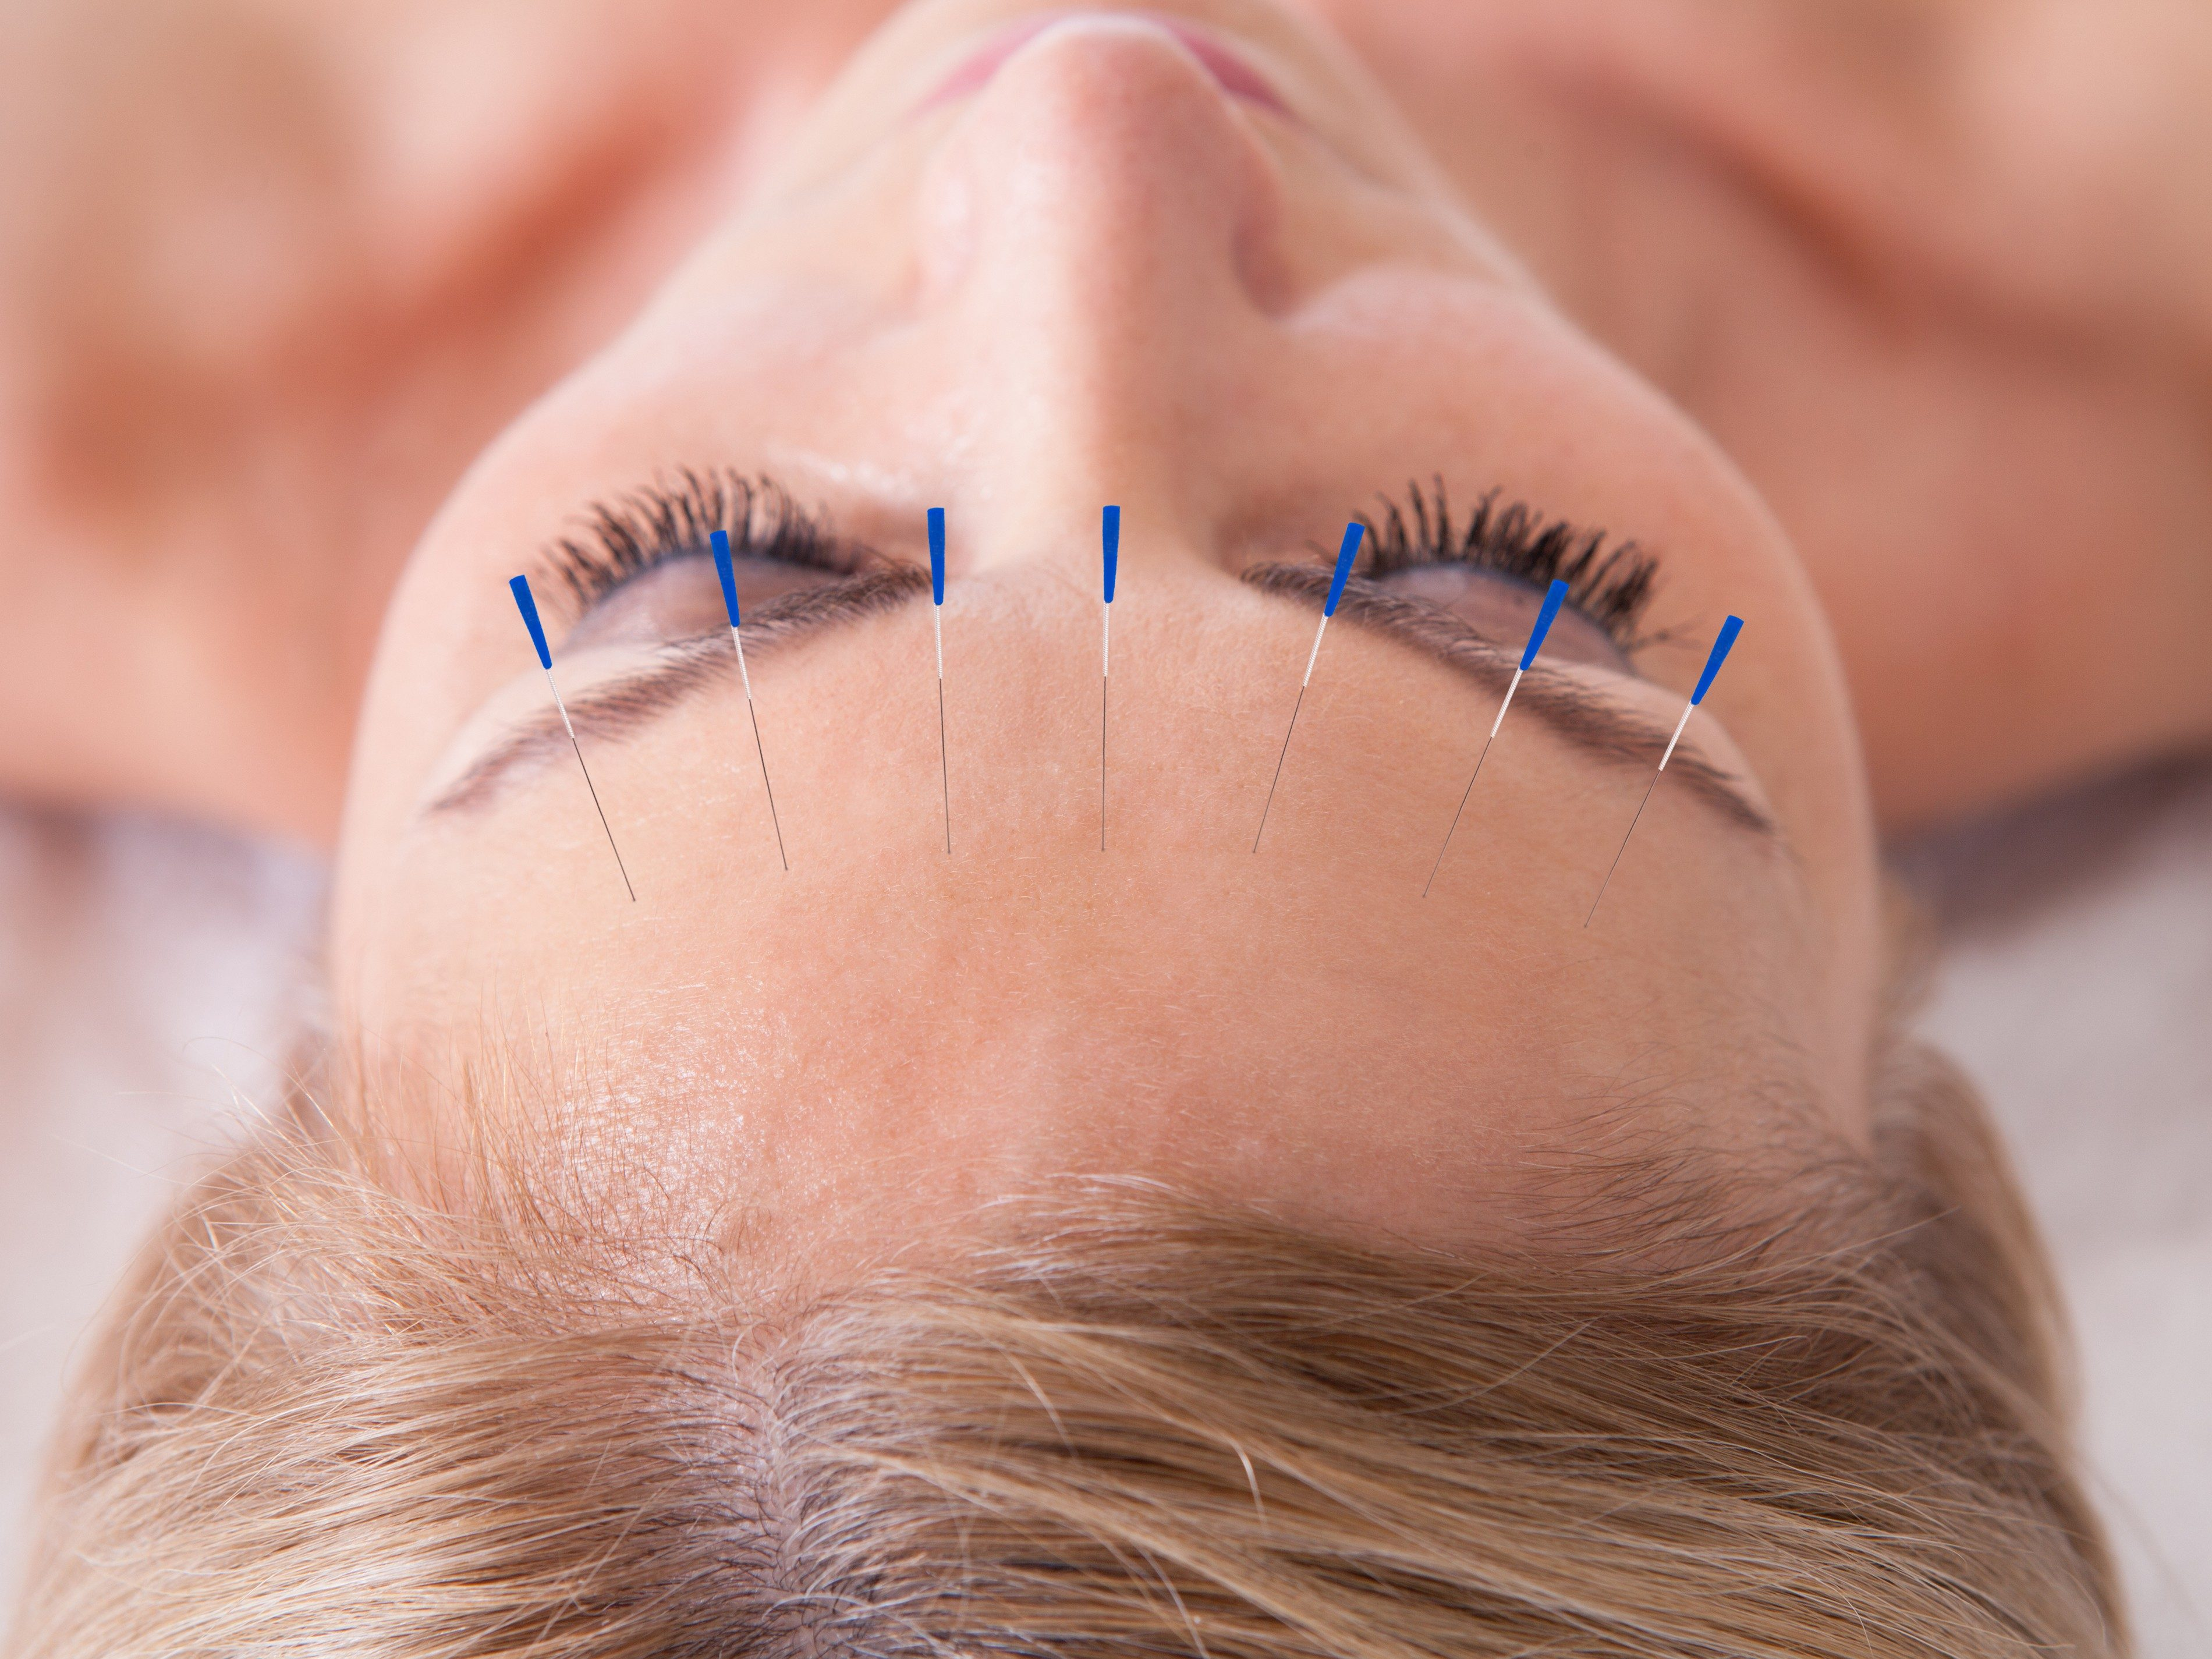 1. What You Should Know About Acupuncture